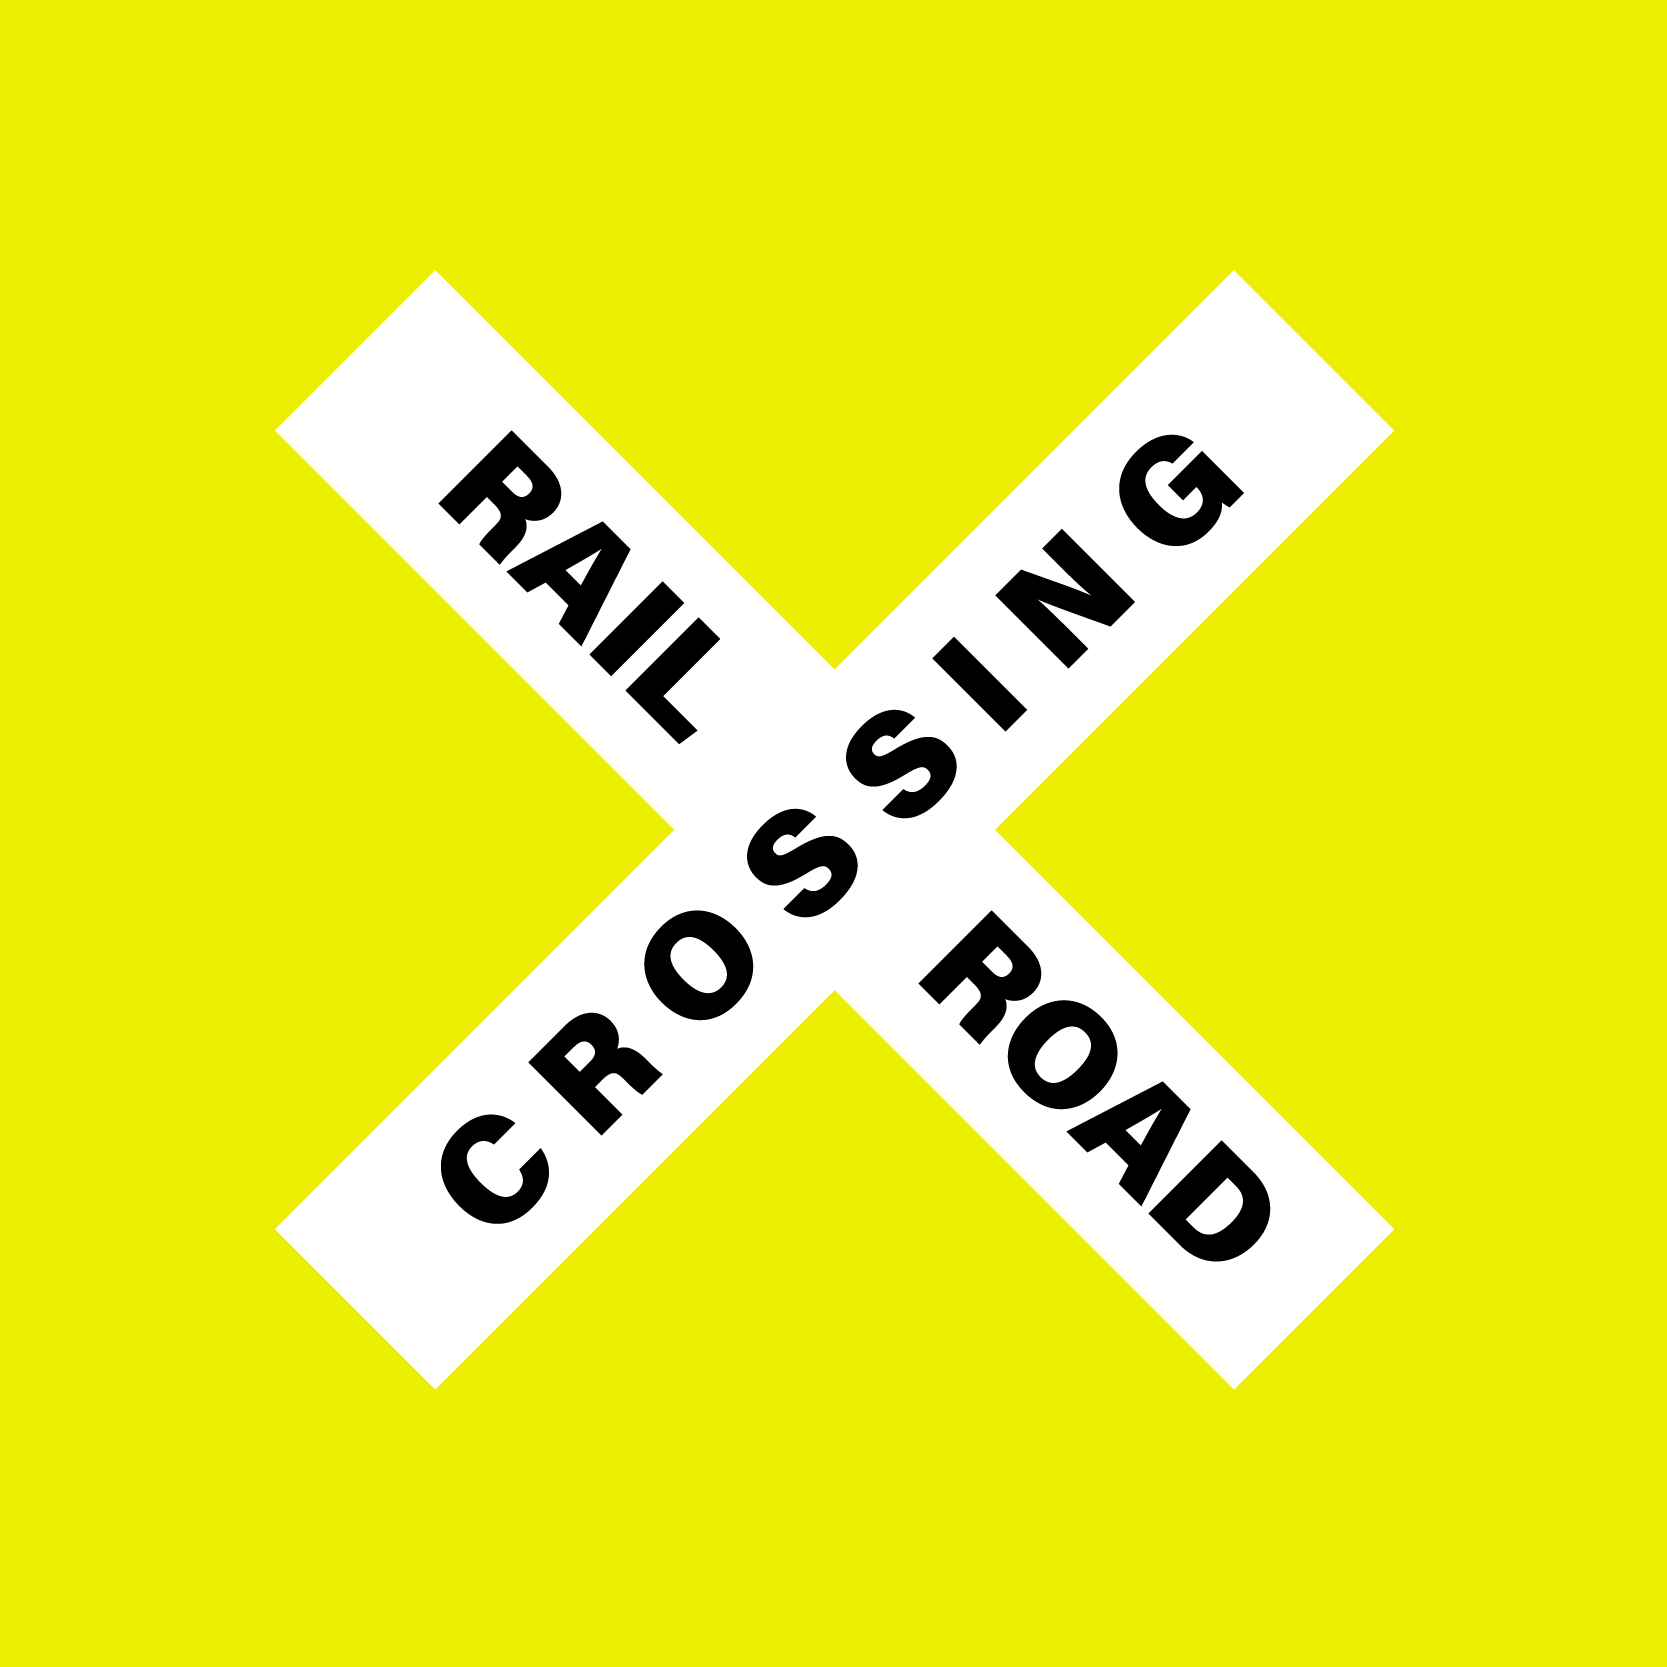 Improve pedestrian crossings at railroad tracks